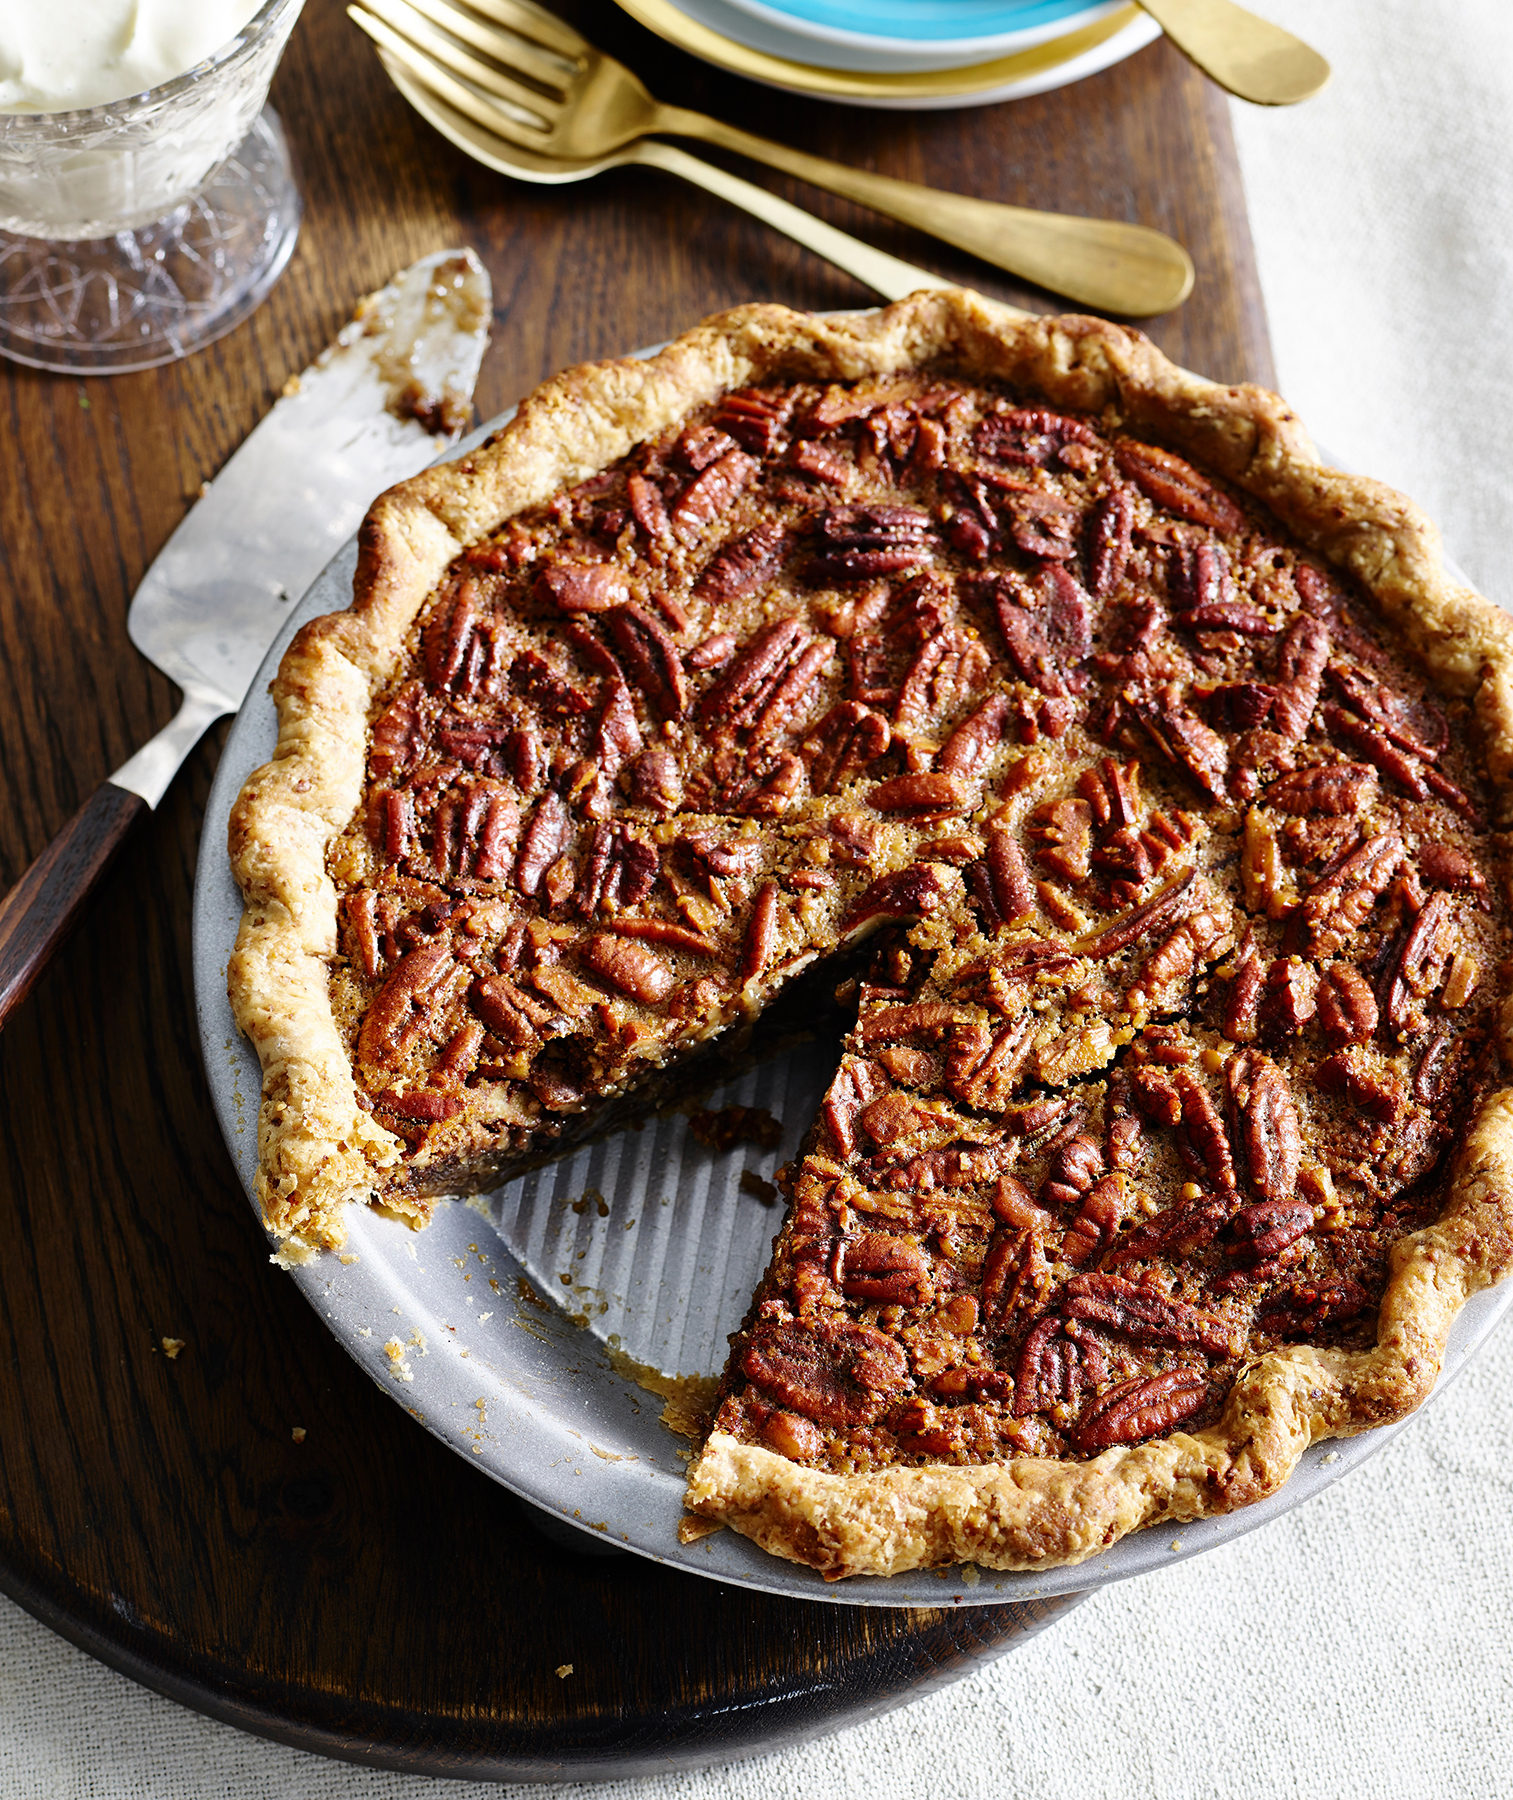 Pecan pie with whipped cream, plates